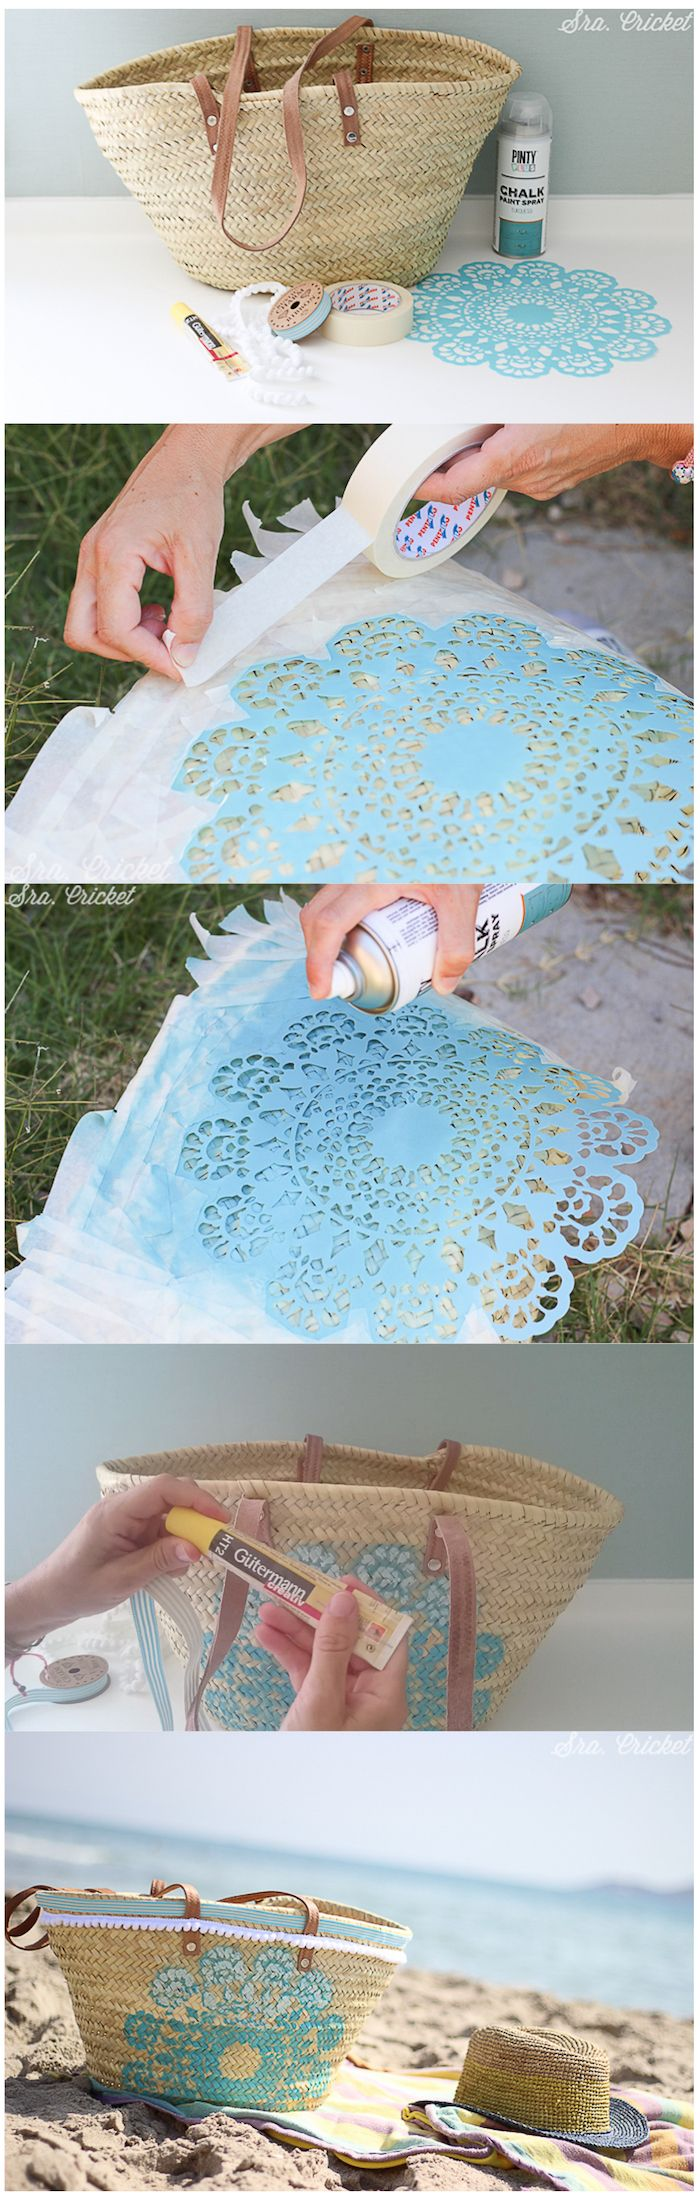 Lace Doily stencil for painting basket handbag tote. tutorial para personalizar capazo #DIY #cesto #basket